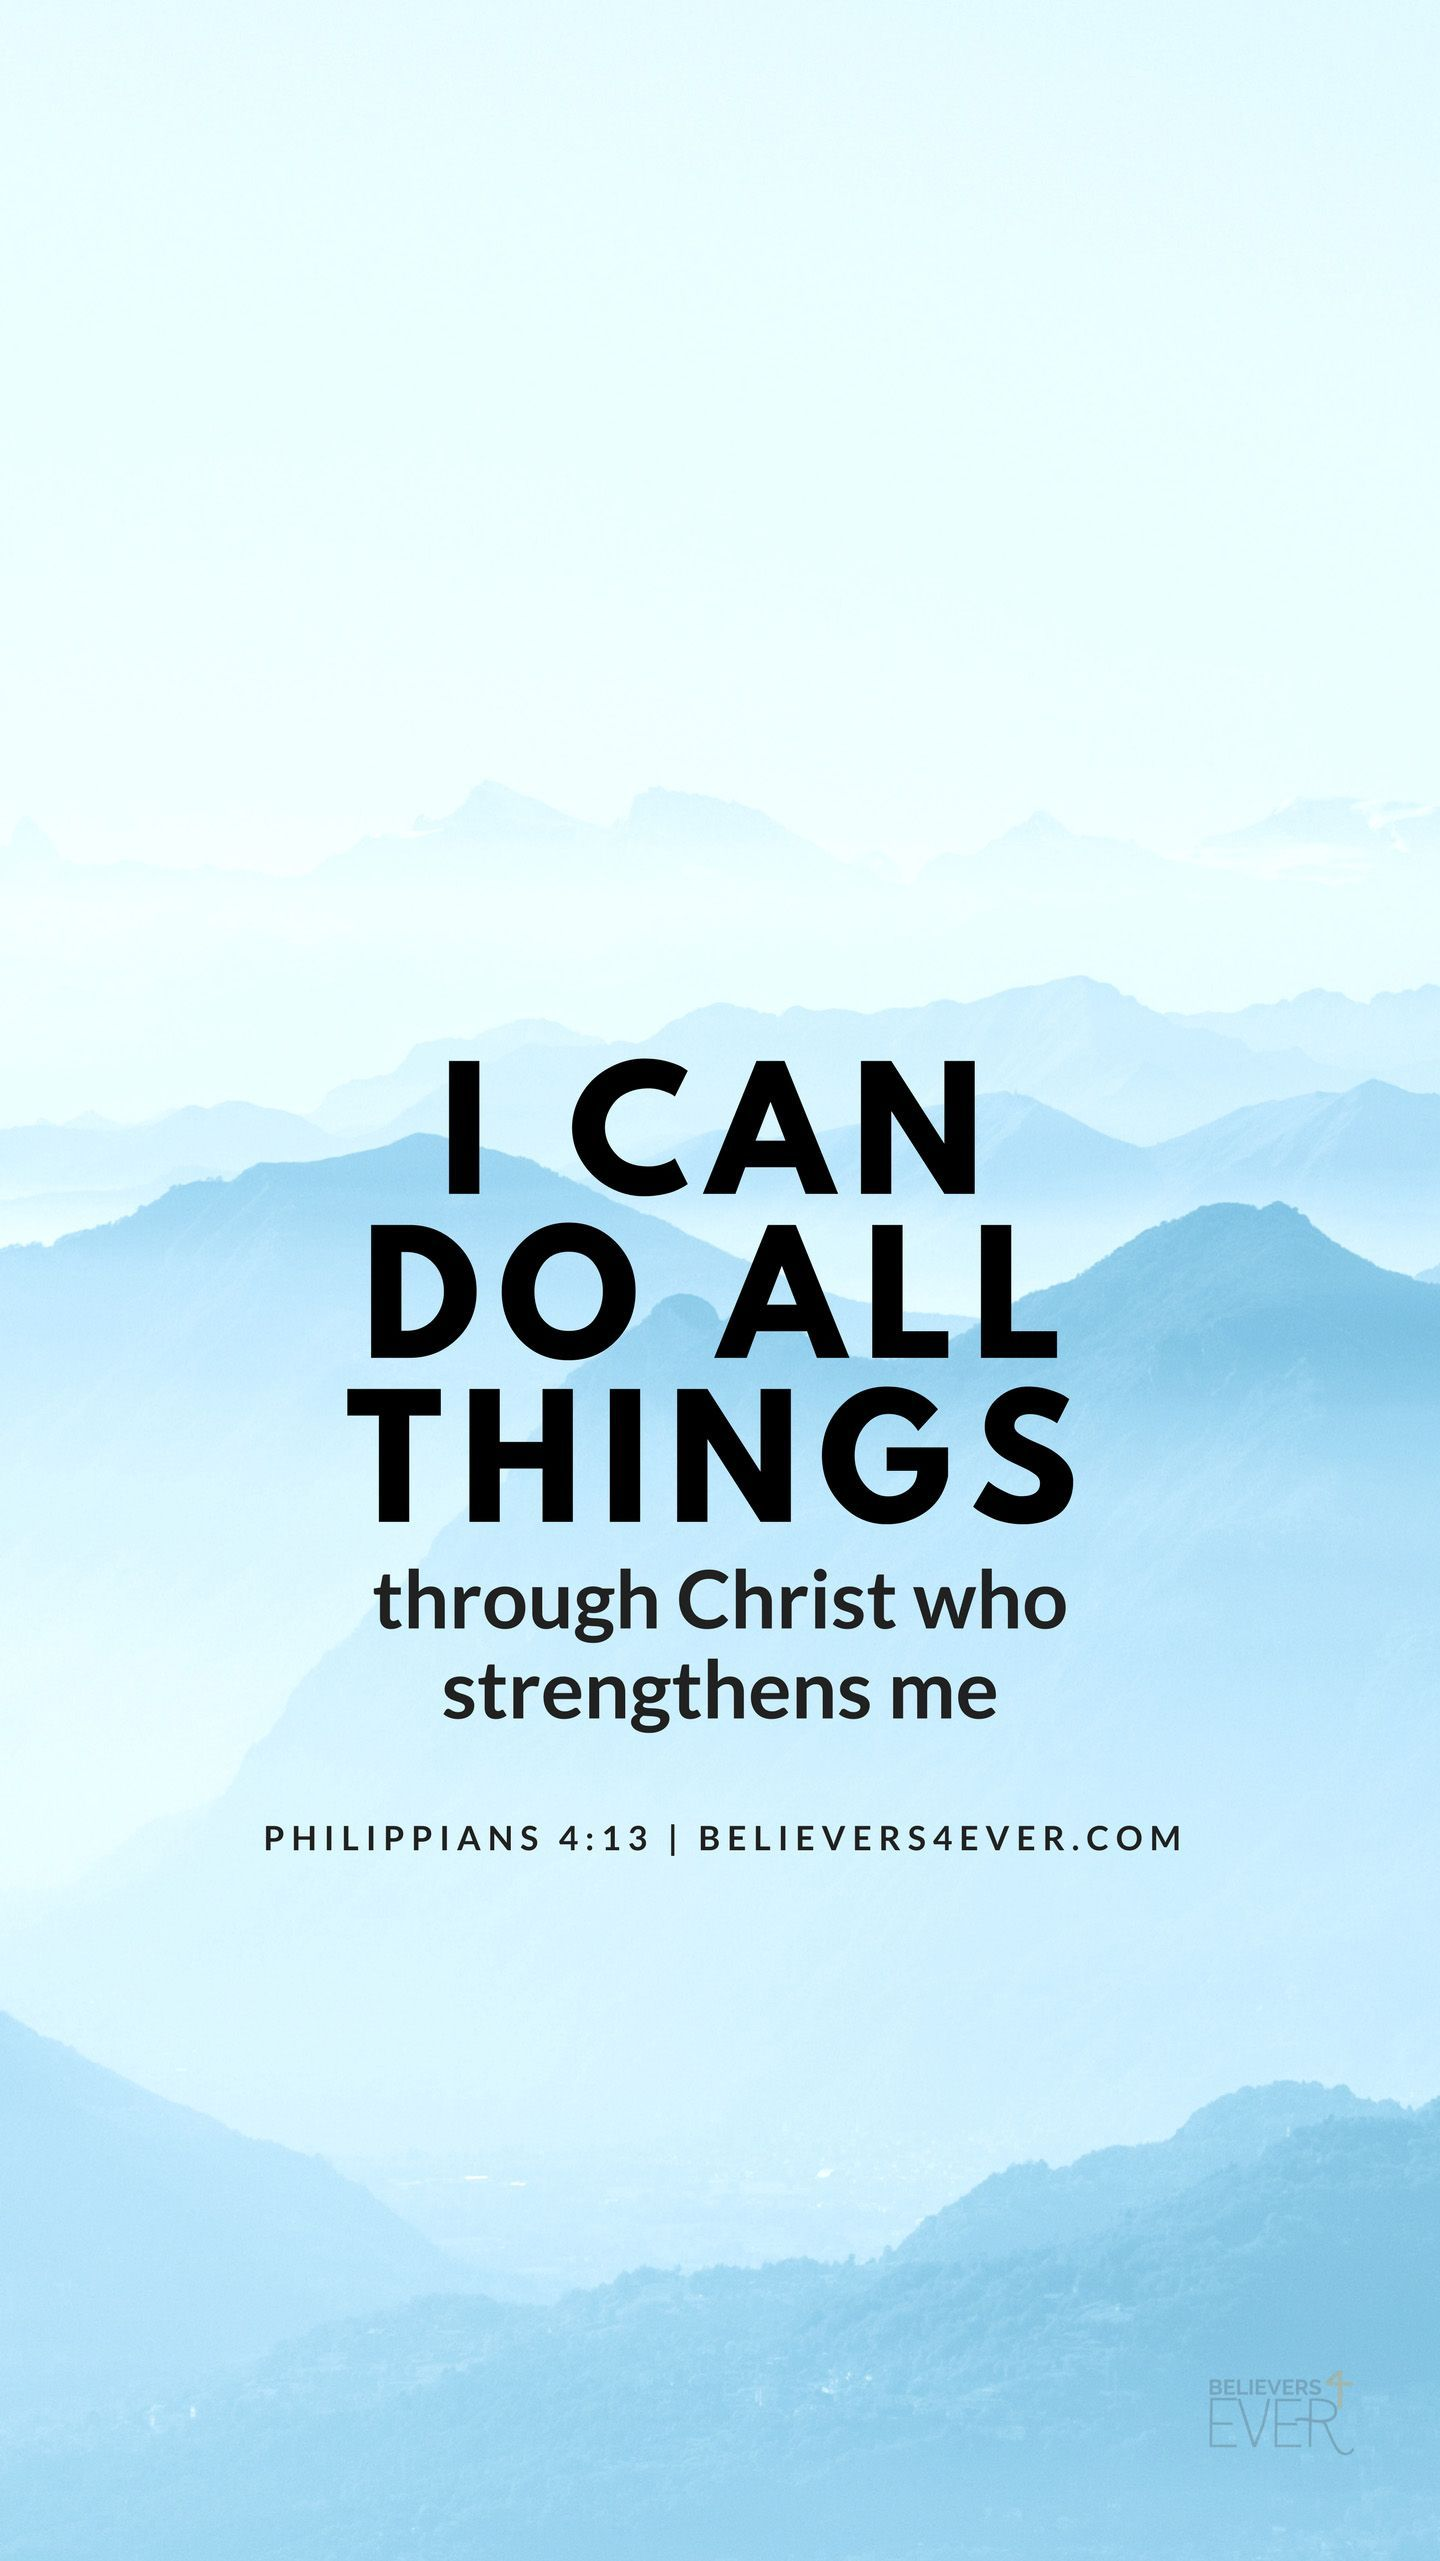 I Can Do All Things Through Christ Who Strengthens Me Philippians 413 Free Mobile Wallpaper Background Download For Your